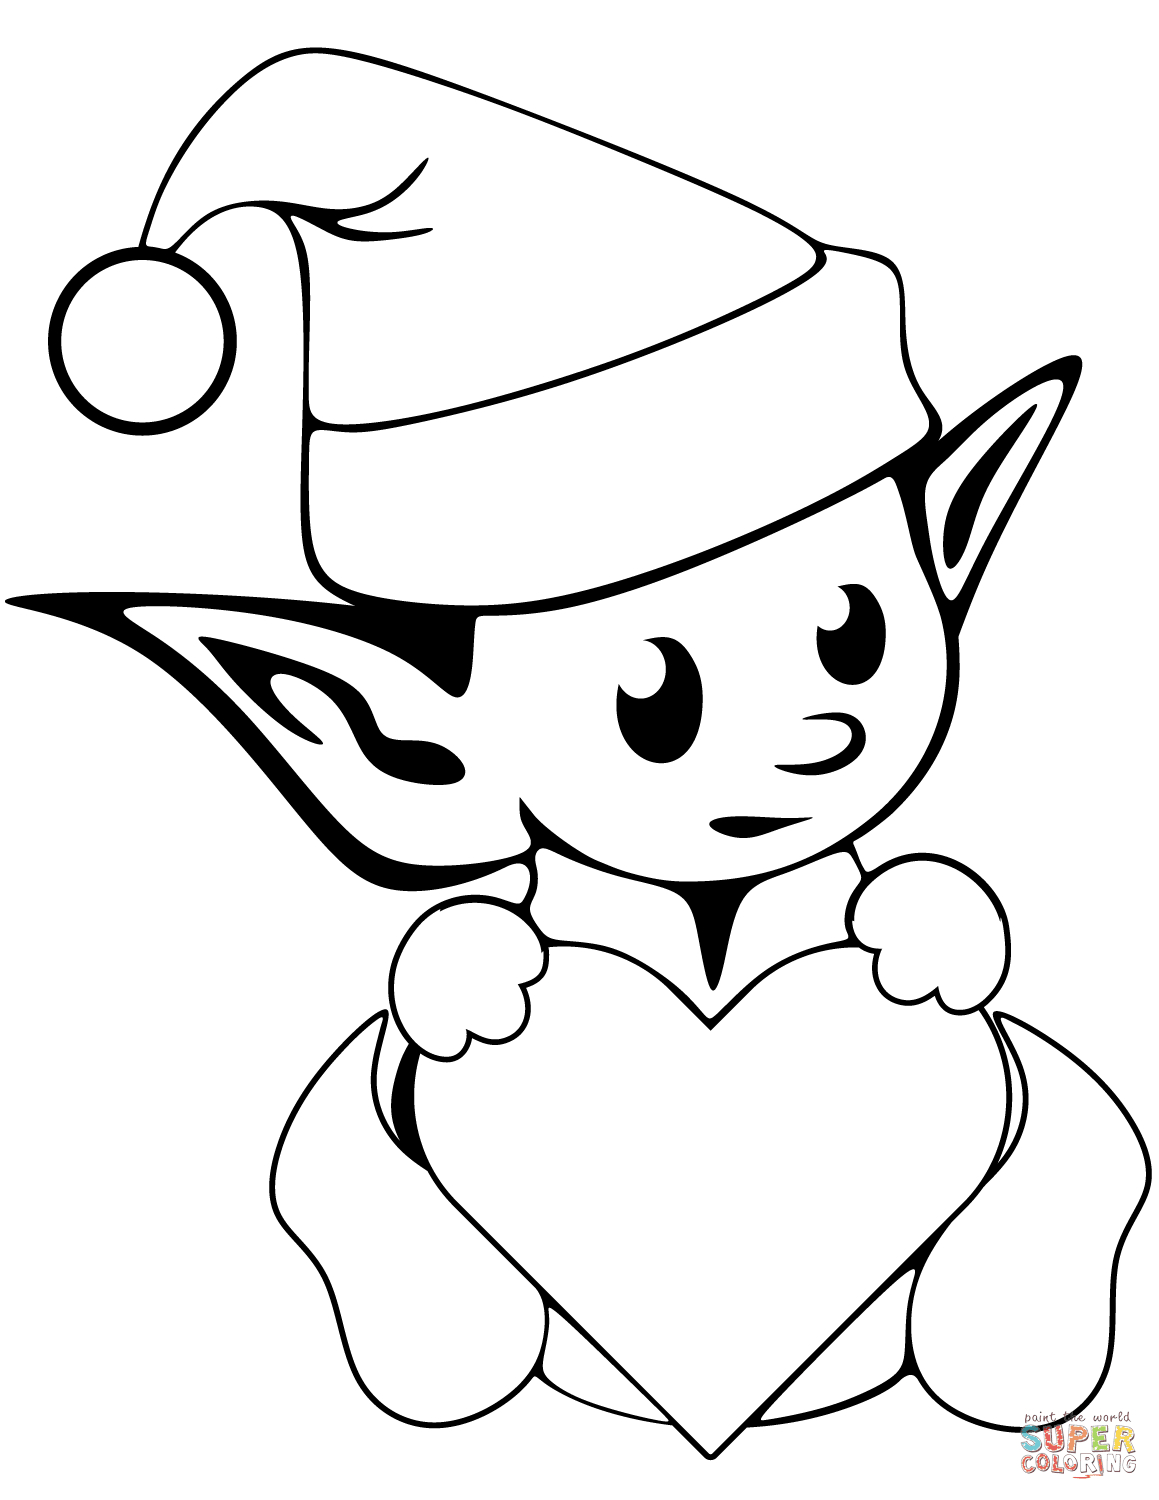 Christmas Elf Coloring Pages Christmas Elves Coloring Pages Free Coloring Pages